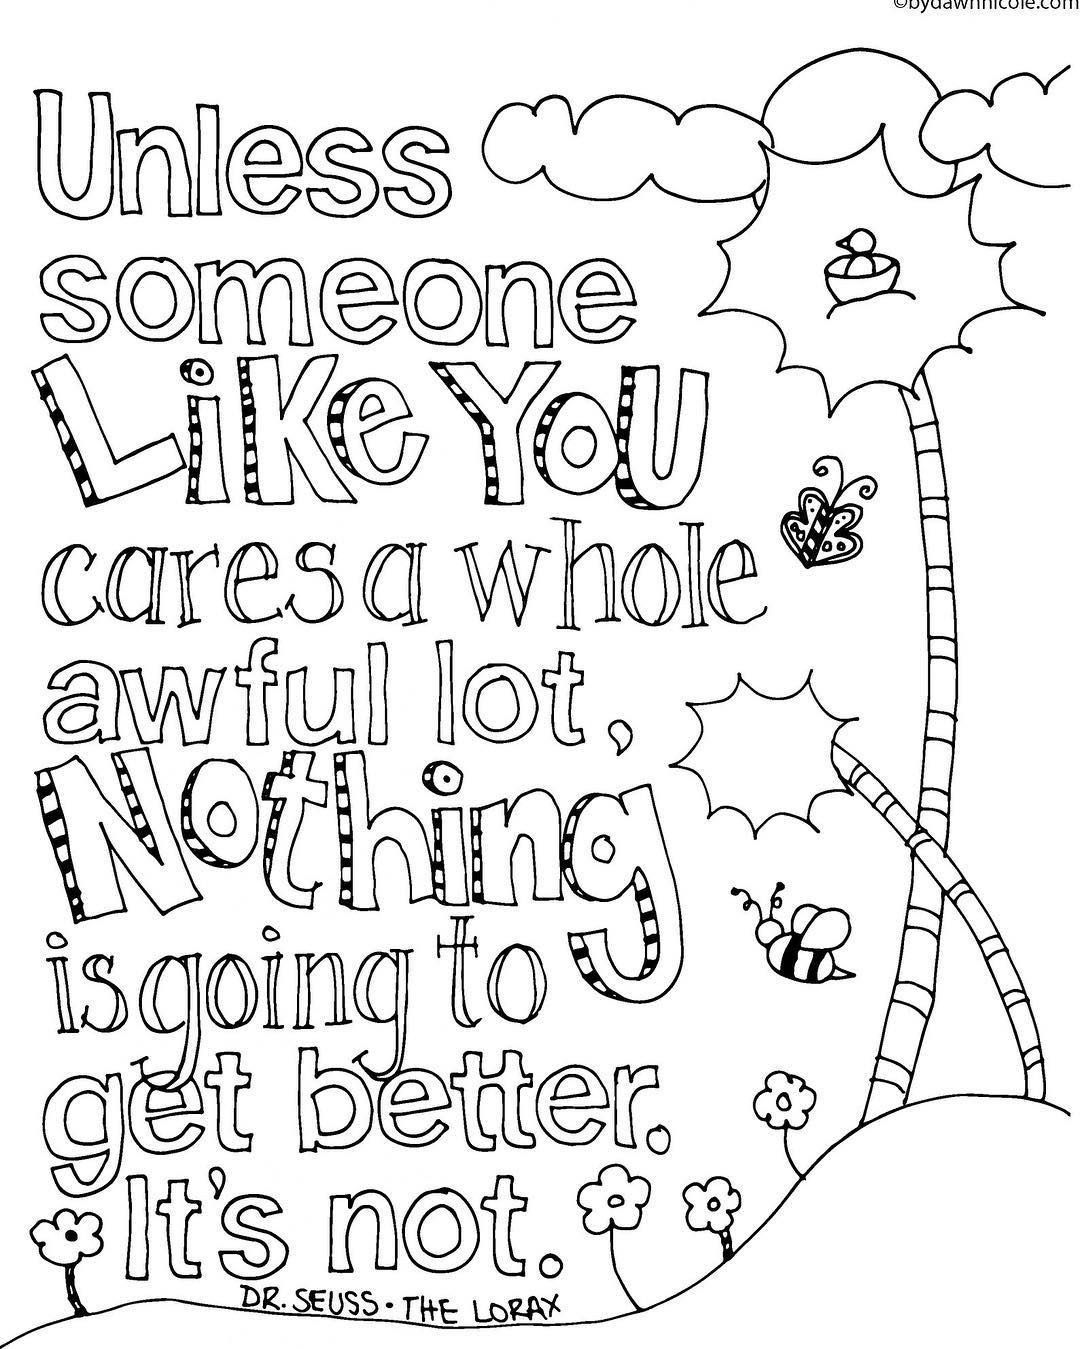 Dr Seuss Coloring Pages Best Of Unless Someone Like You Cares A Whole Lot Thankfully All Earth Day Coloring Pages Quote Coloring Pages Dr Seuss Coloring Pages